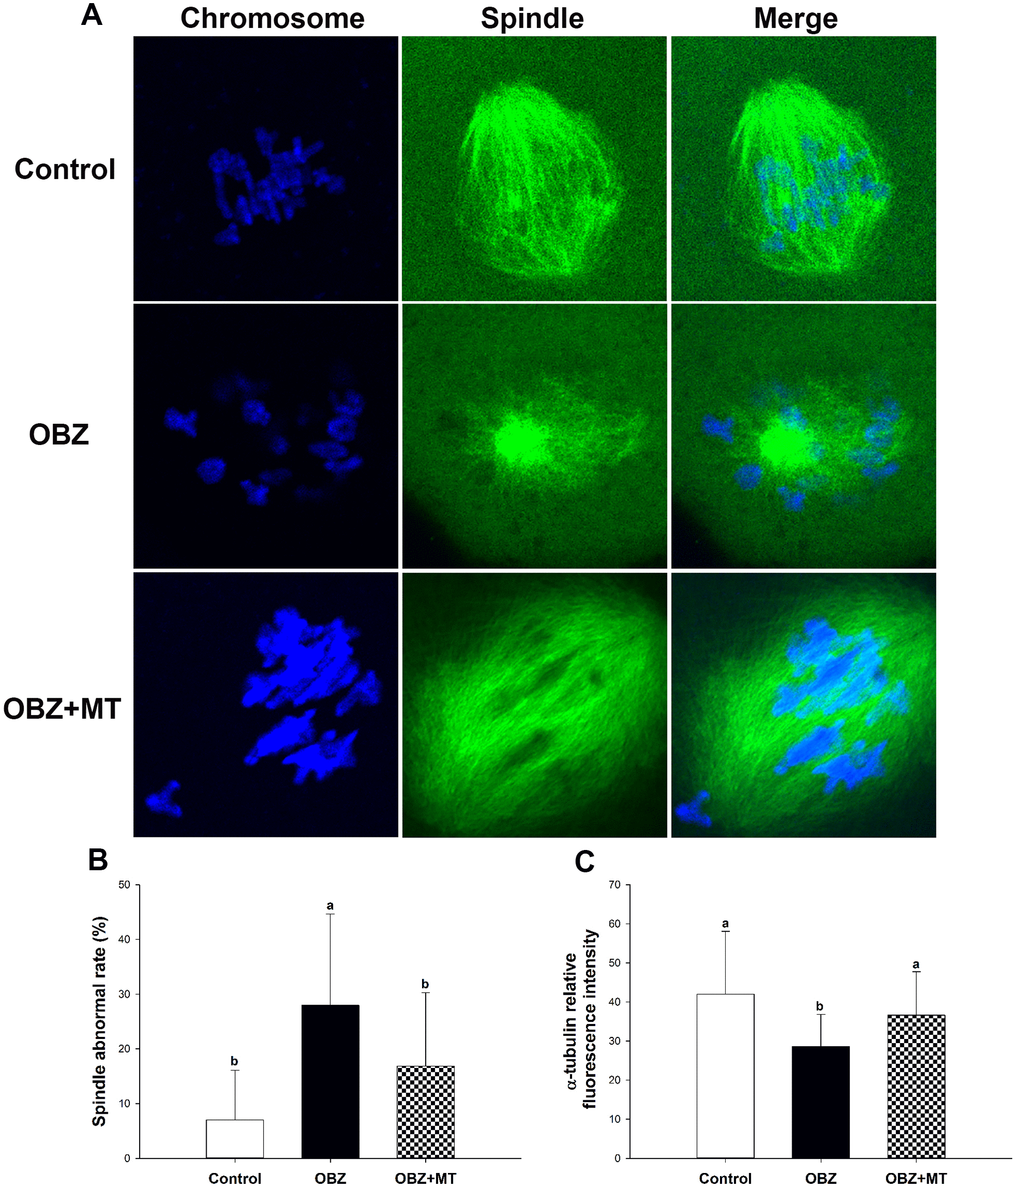 Effects of melatonin on spindle formation and chromosome alignment in OBZ-exposed mice in vivo. (A) Representative images of spindle morphologies and chromosome alignment in the control, OBZ-exposed, and melatonin+OBZ-treated oocytes. Green, α-tubulin; blue, DNA. (B) The rate of abnormal spindles observed in each treatment group. (C) Fluorescence intensity analysis of α-tubulin in the control, OBZ-exposed, and melatonin+OBZ-treated oocytes. Values indicated by different letters are significantly different (P